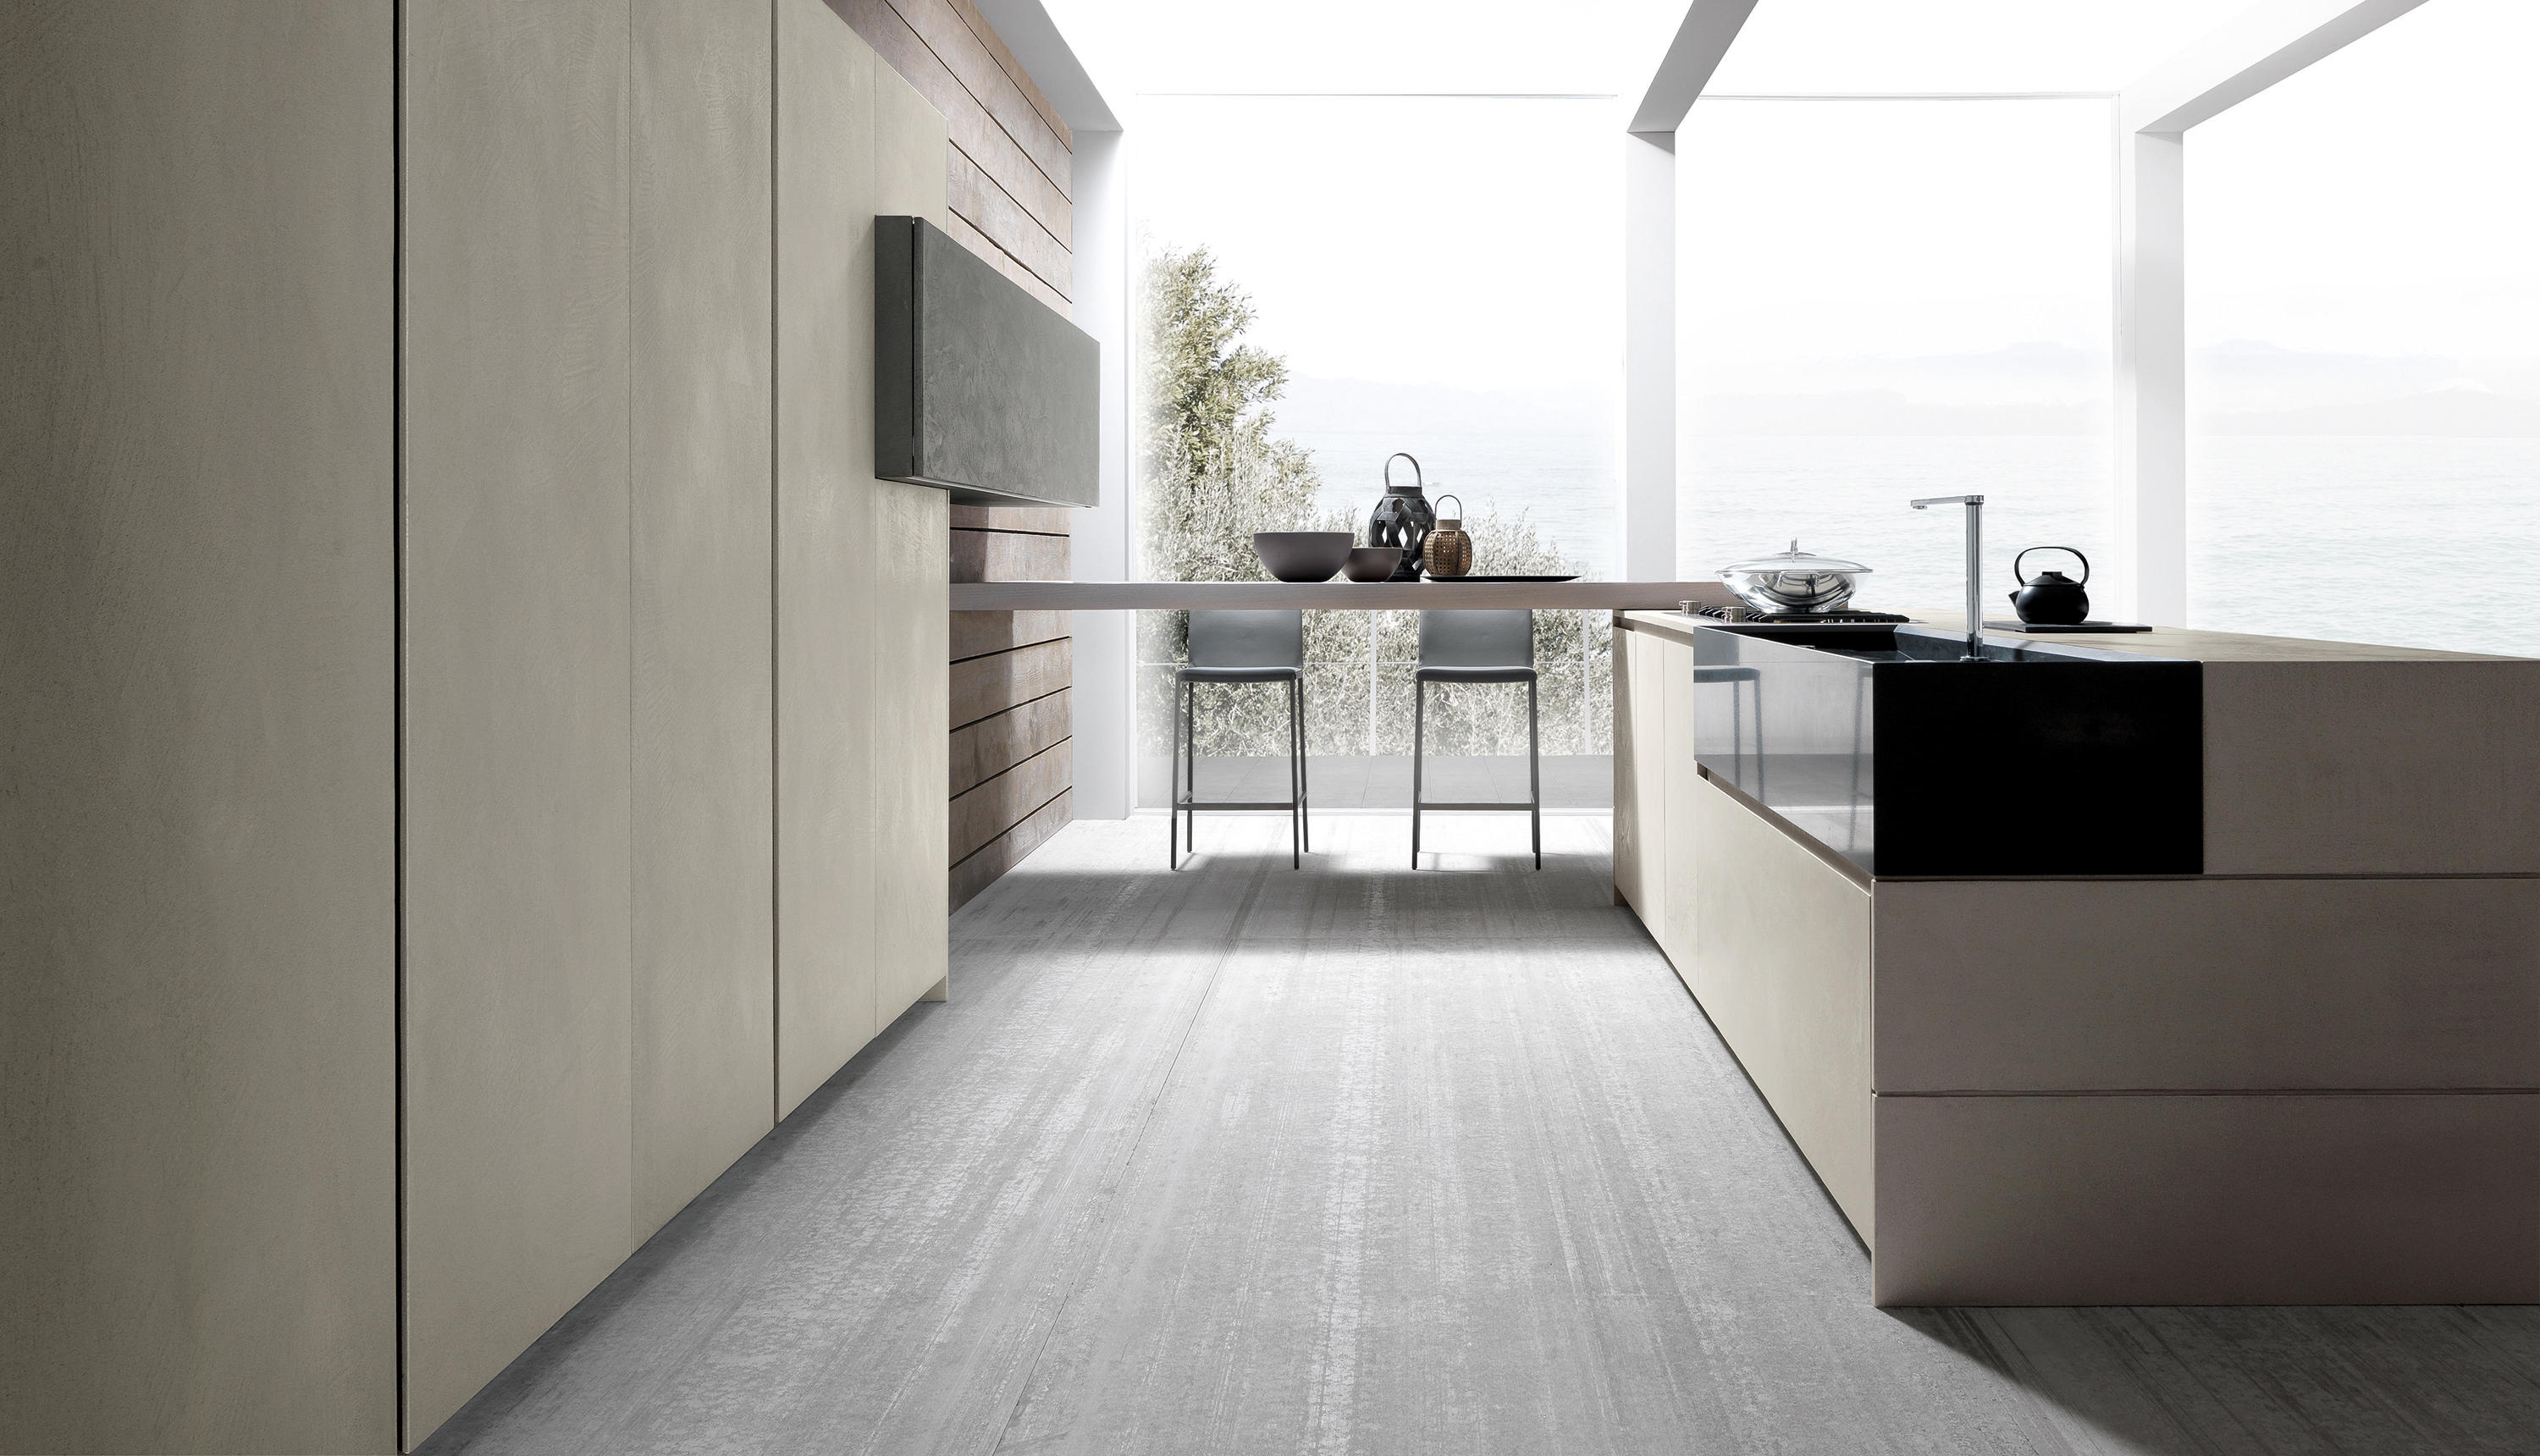 Top Cucina In Resina twenty 1 resin island & designer furniture | architonic